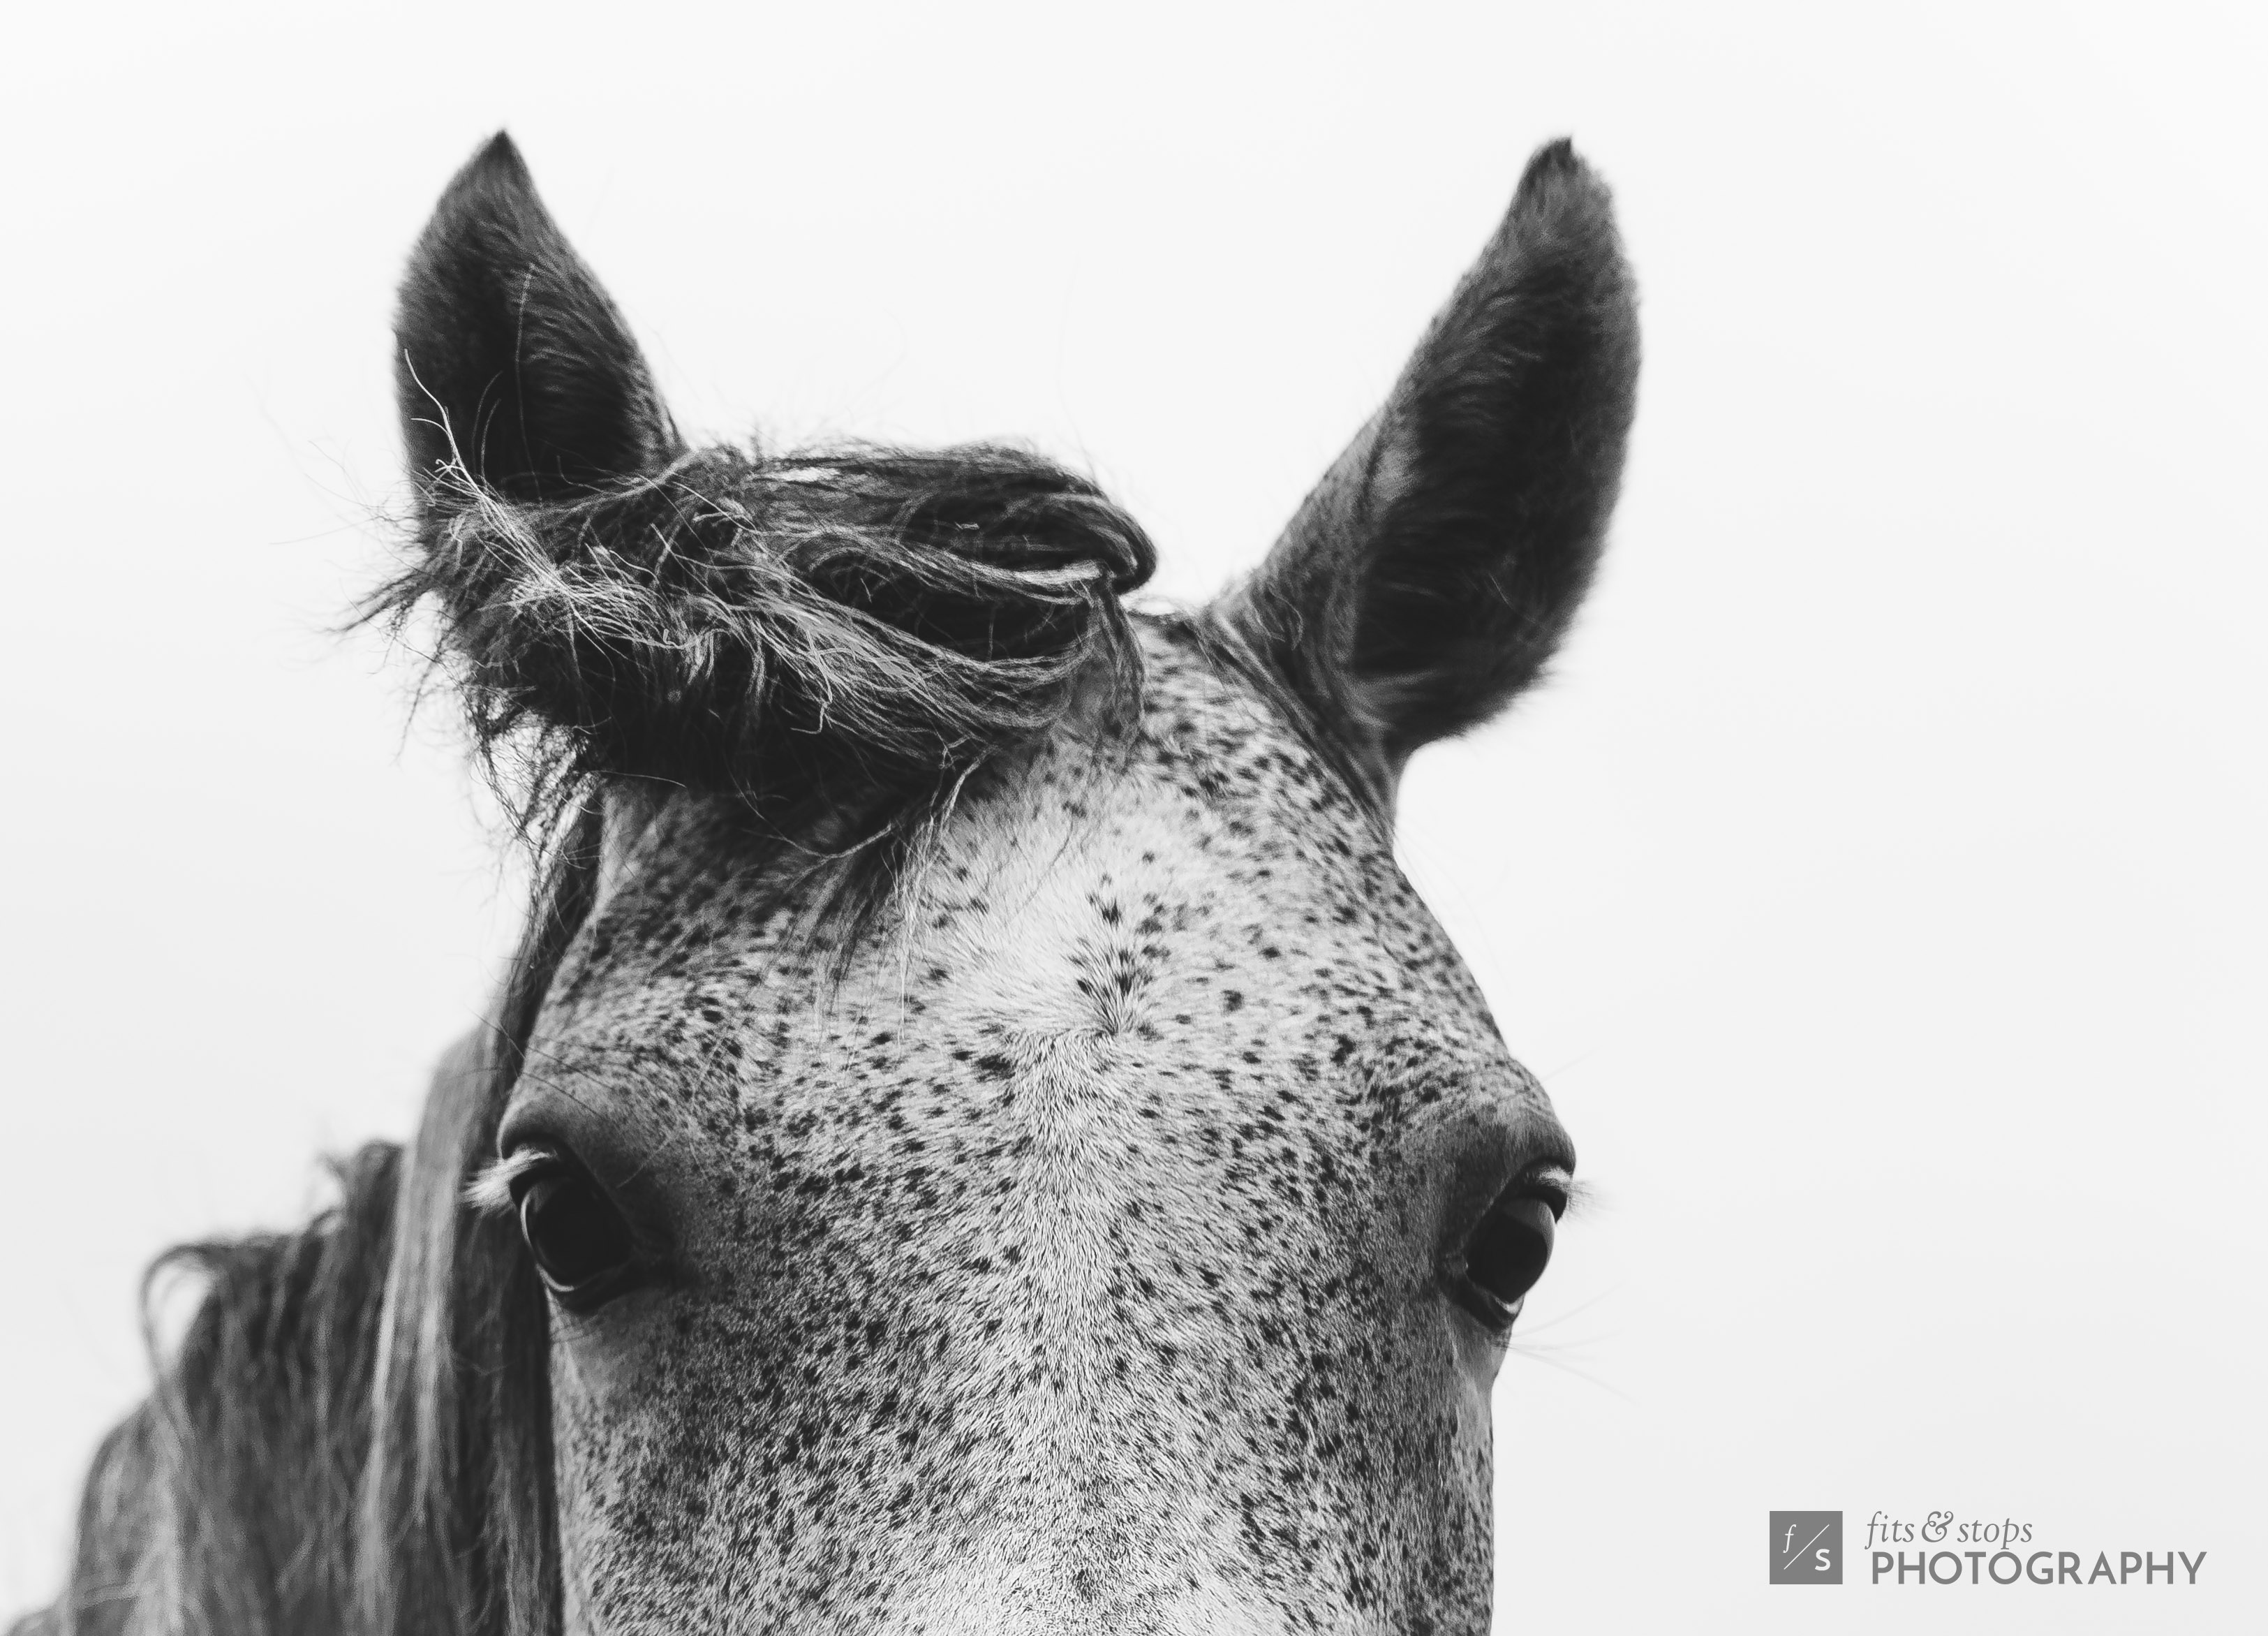 A close up, black and white photograph of a horse with speckled hair, looking directly at the camera with ears perked upright